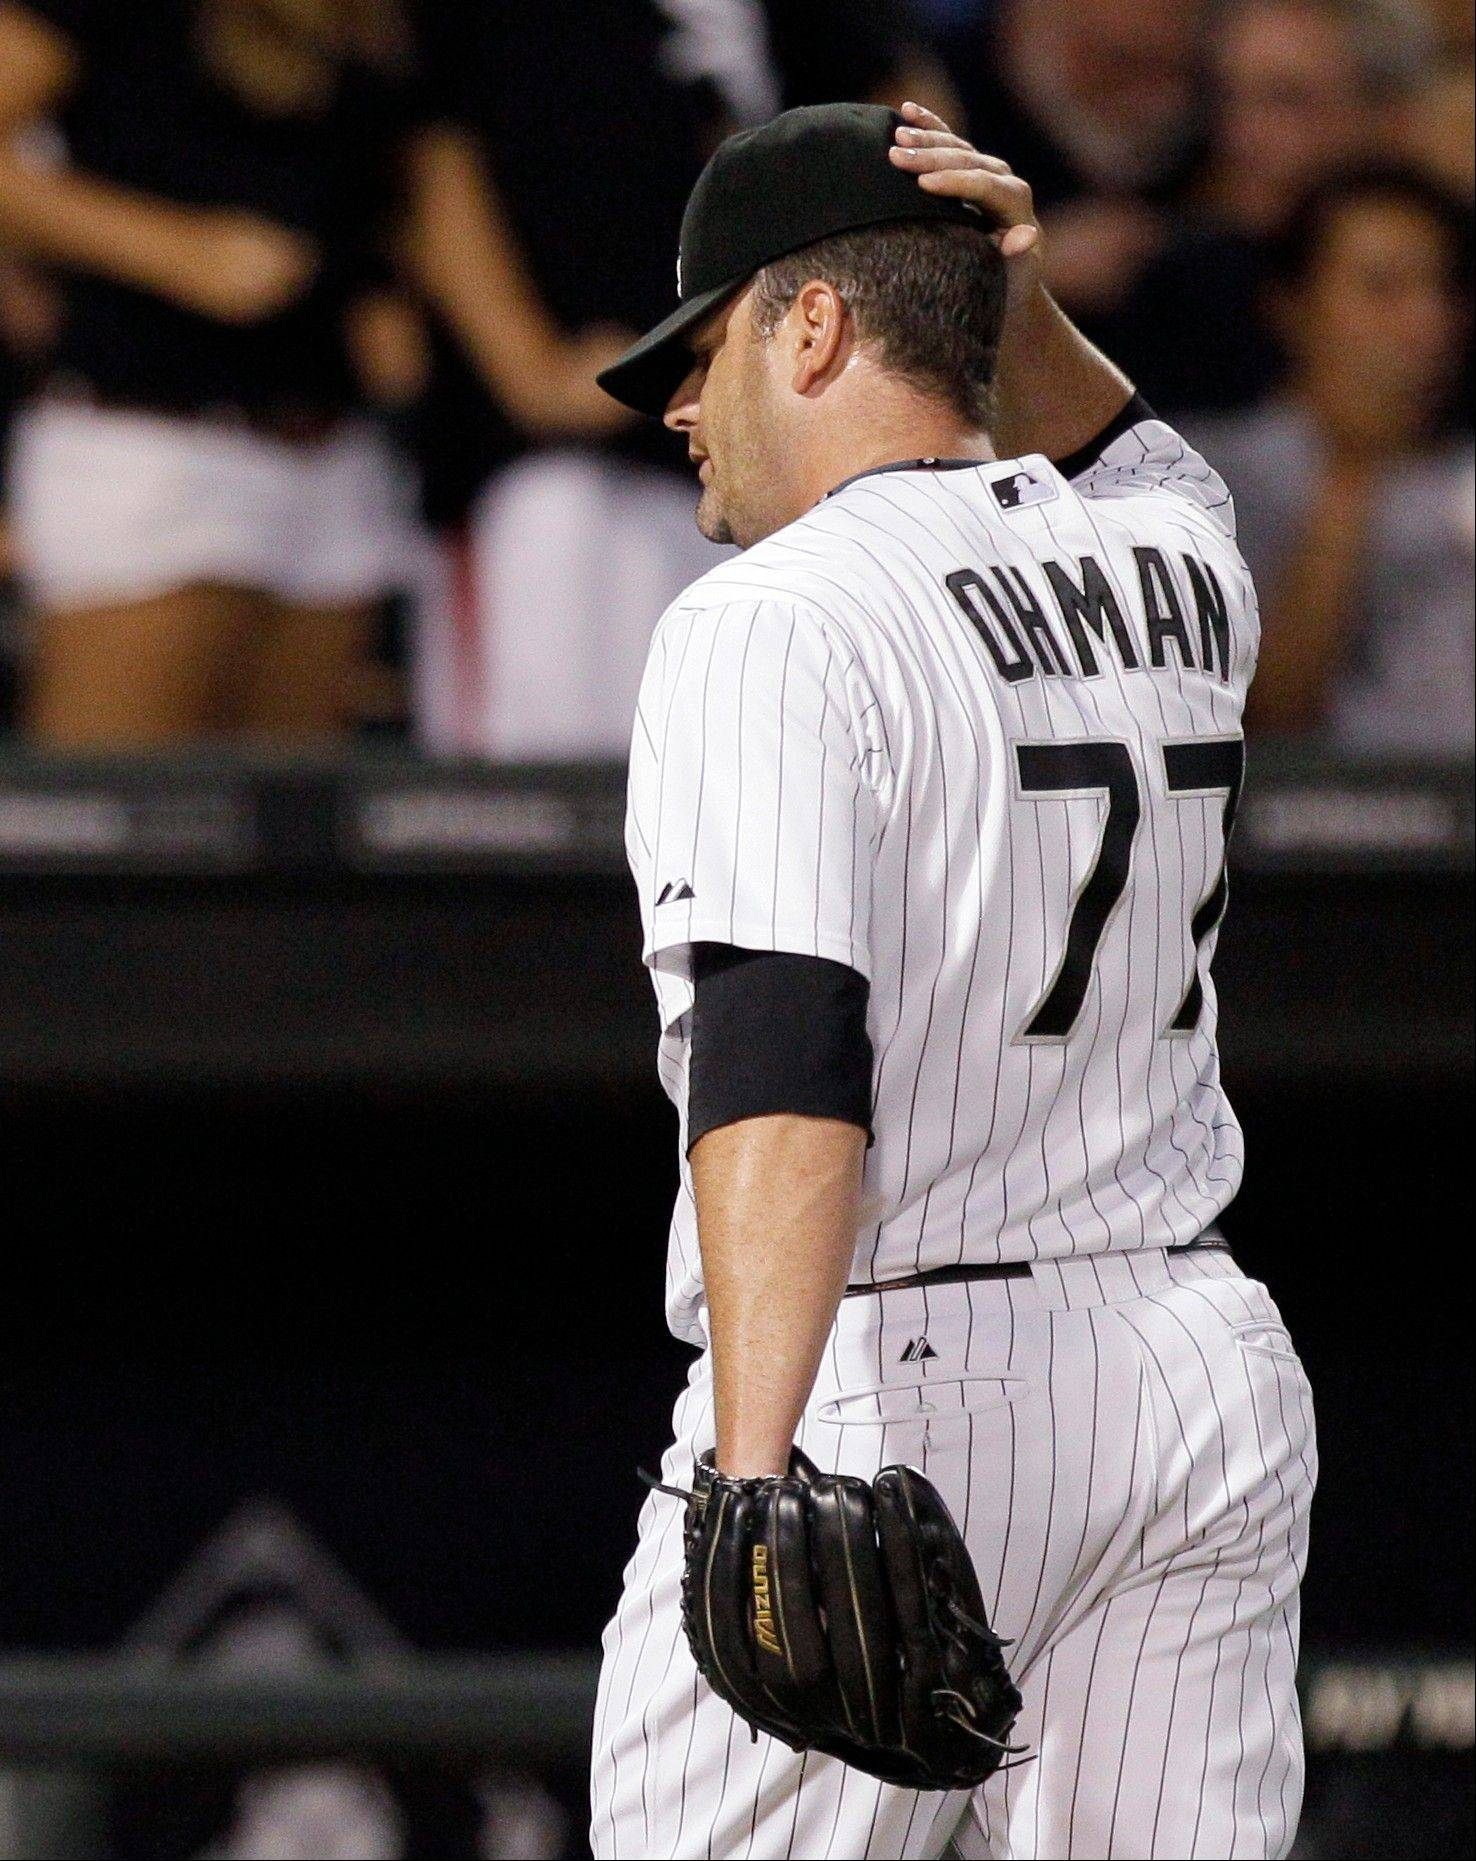 White Sox reliever Will Ohman reacts as he walks back to the dugout after allowing a 3-run homer in the fourth.